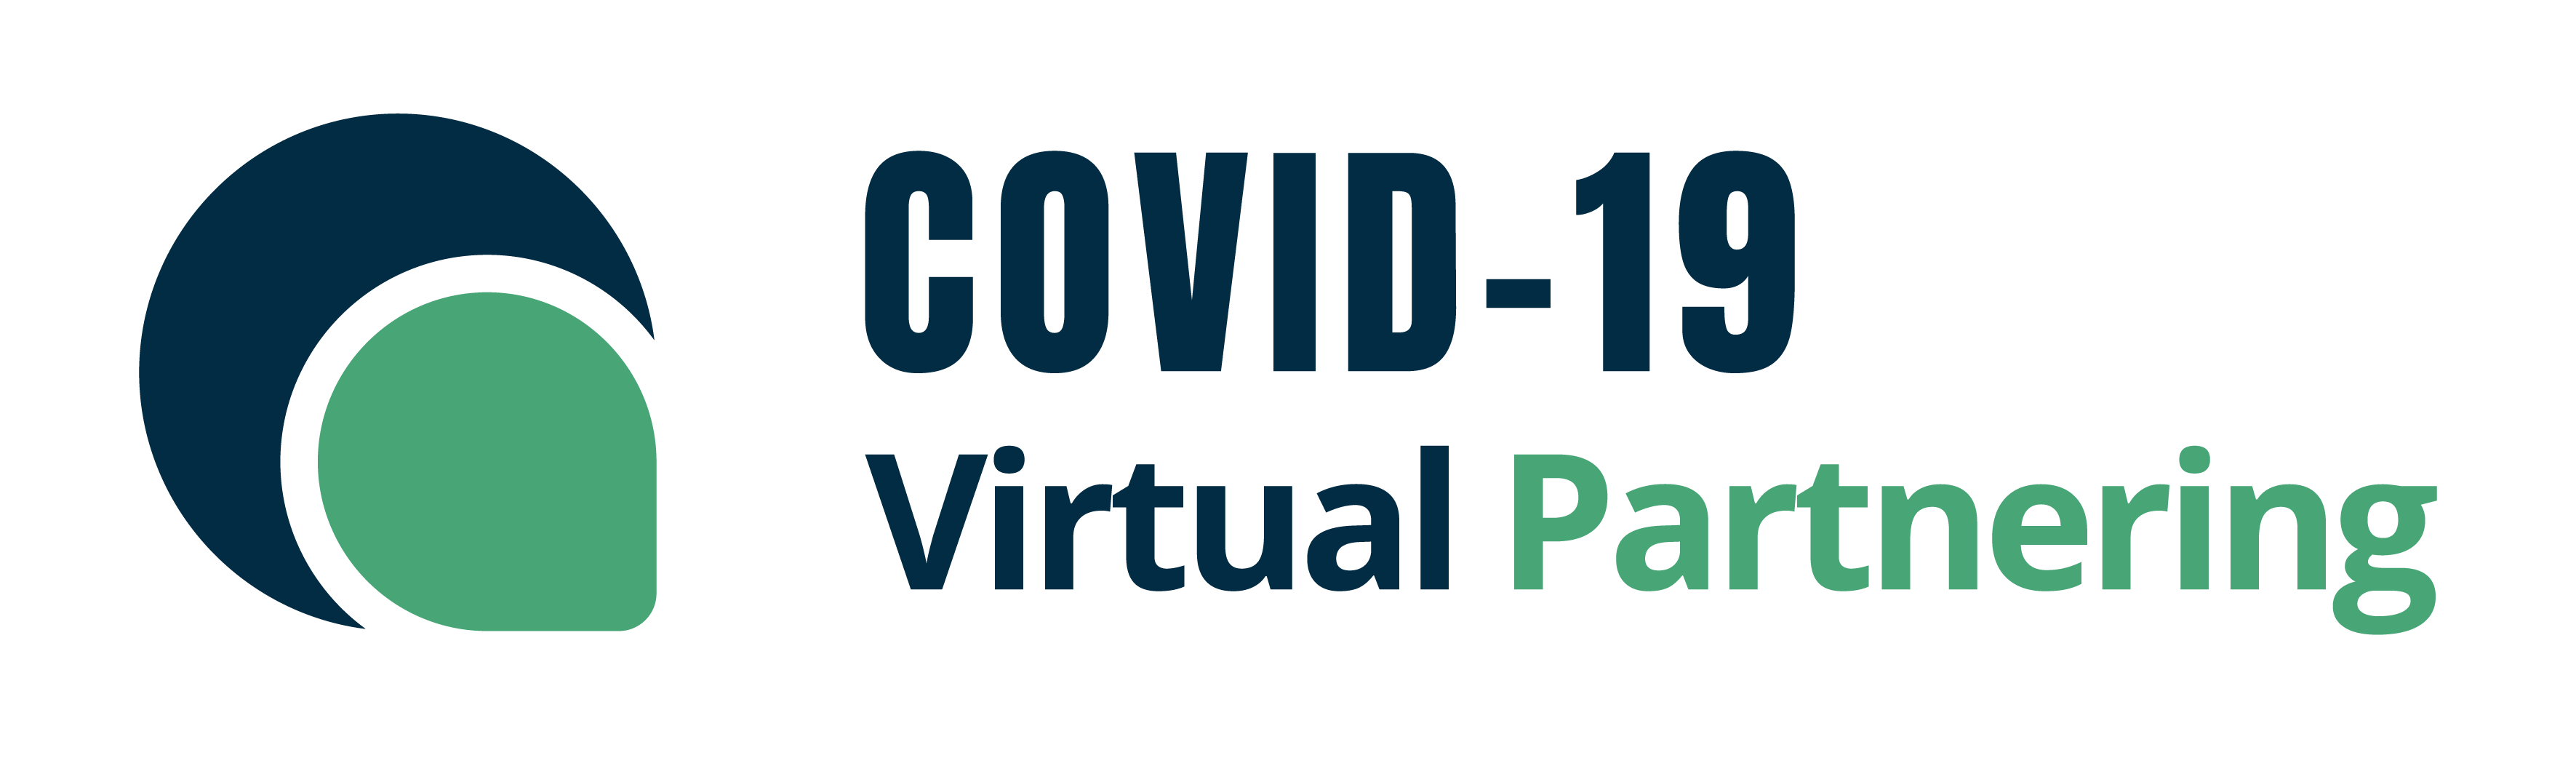 COVID19 Virtual Partnering Logo Simple